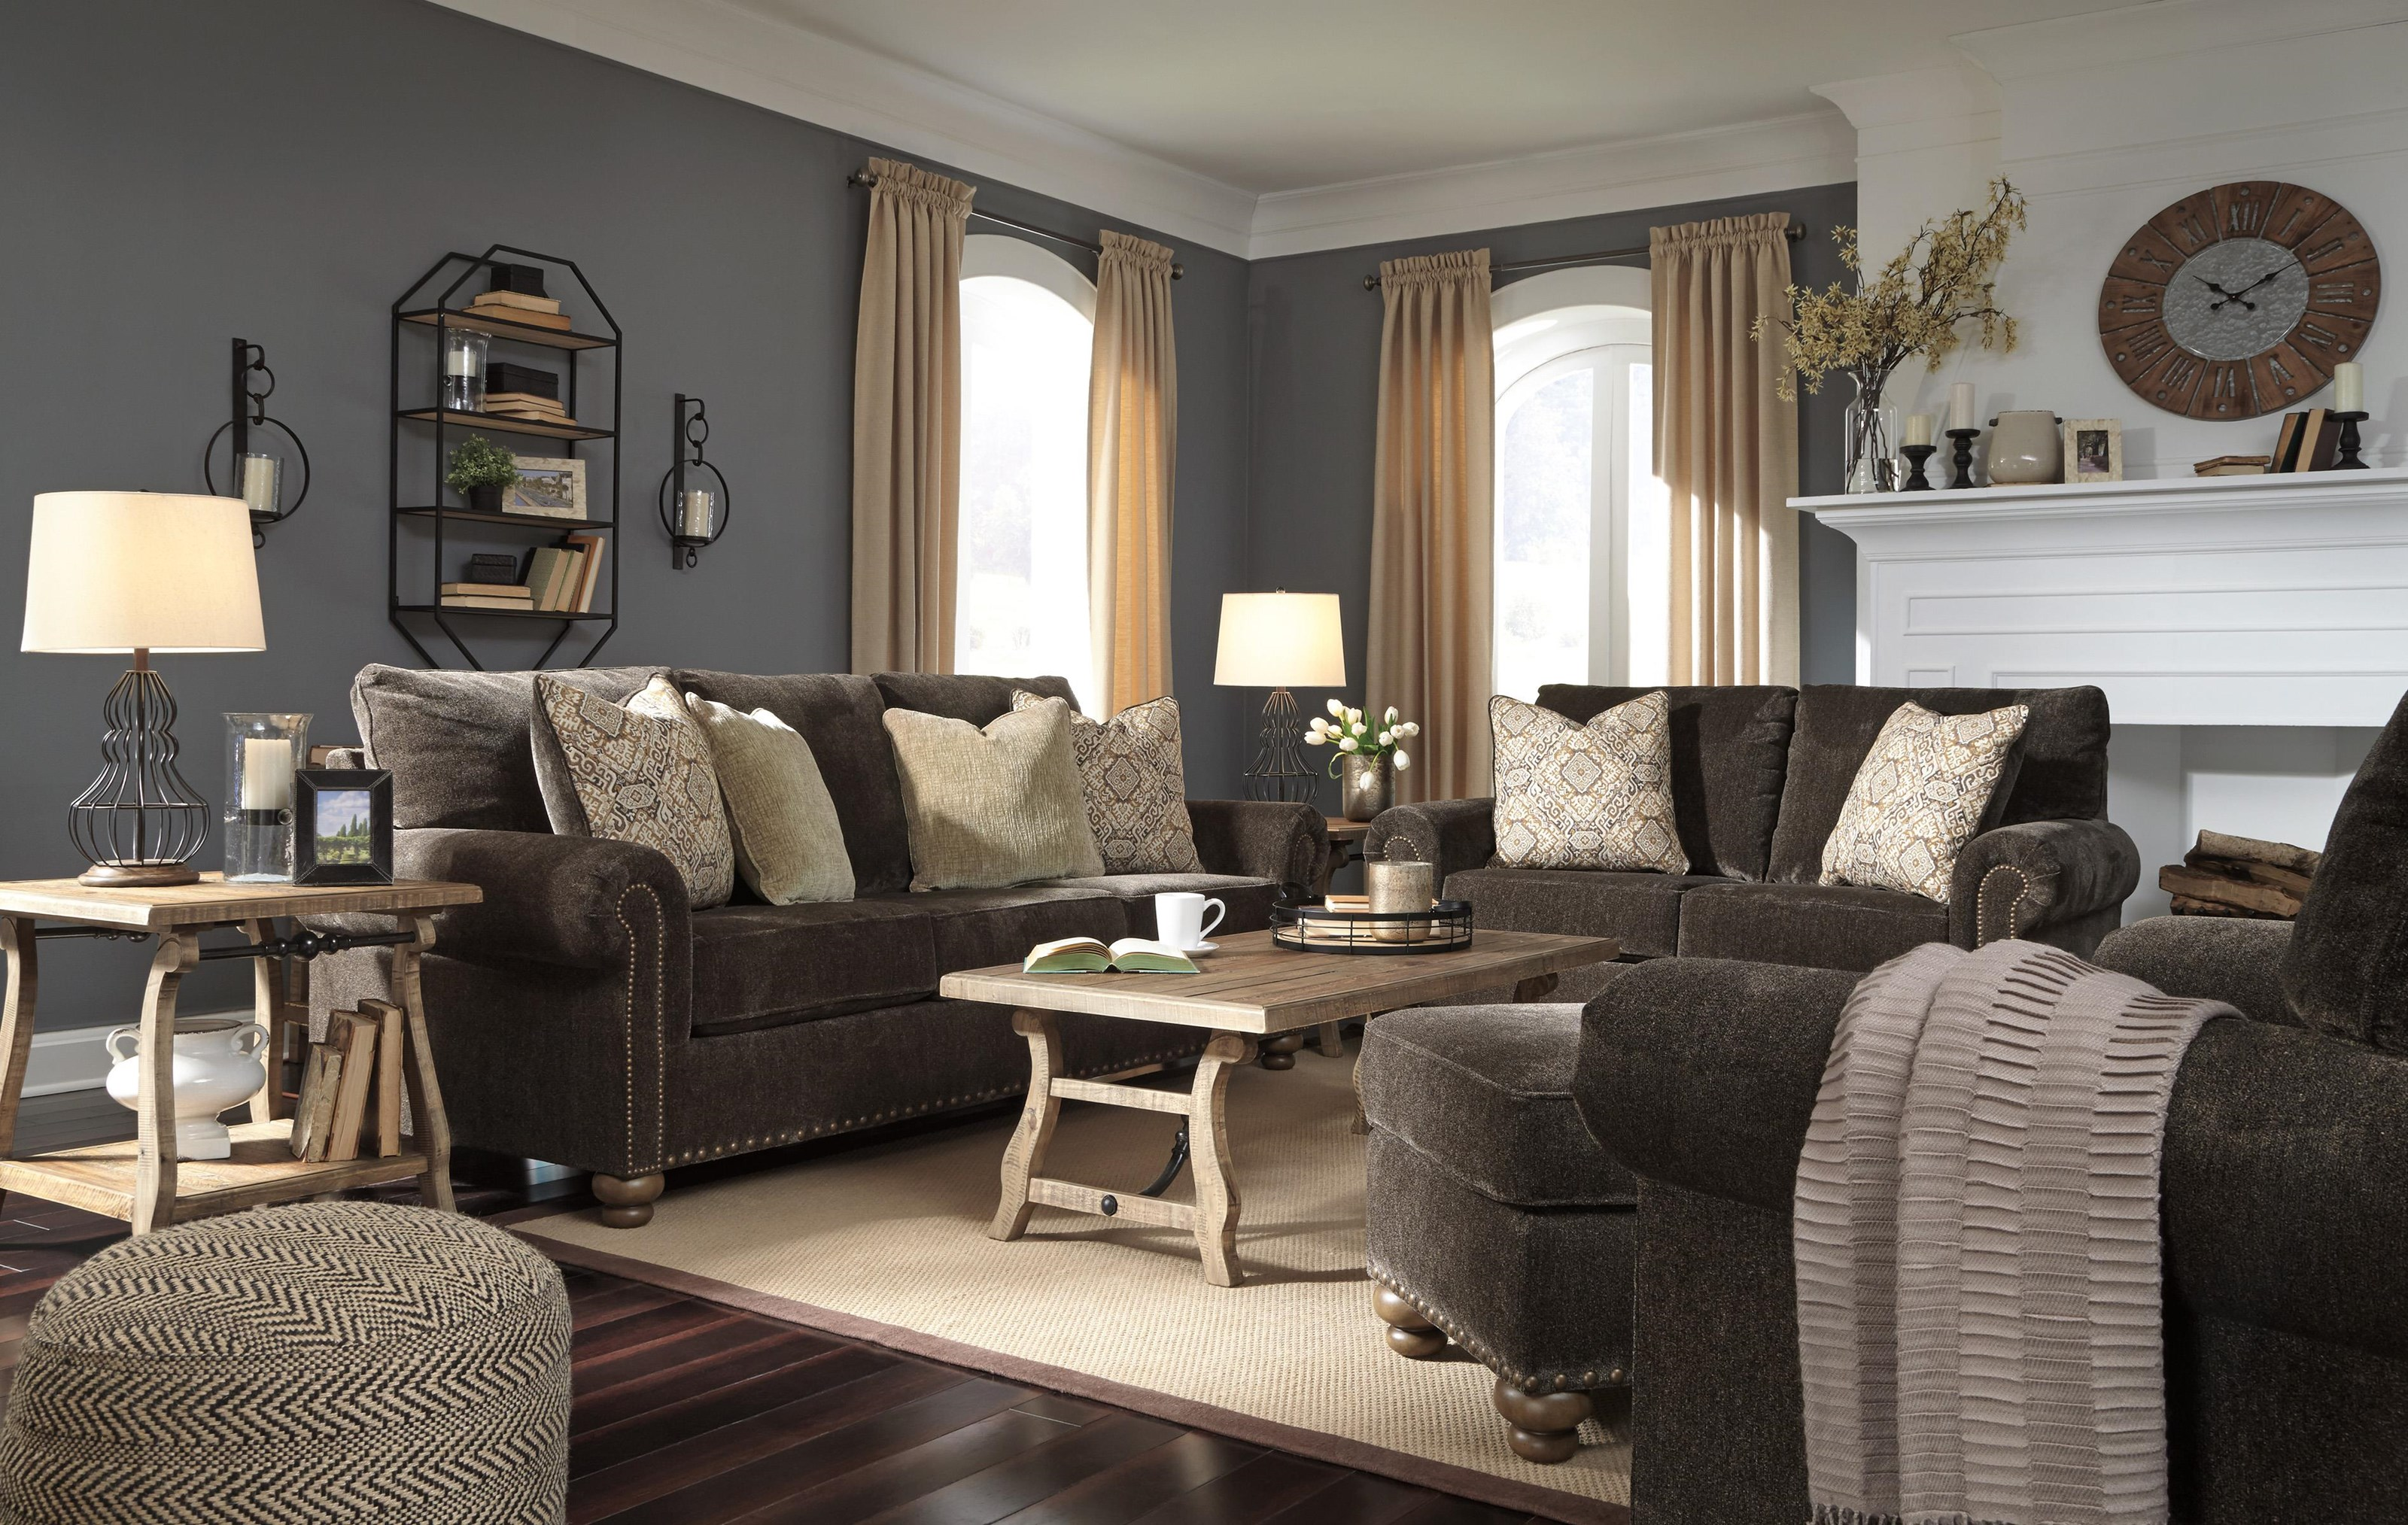 Stracelen Sofa, Chair and Ottoman Set by Signature Design by Ashley at Sam Levitz Furniture